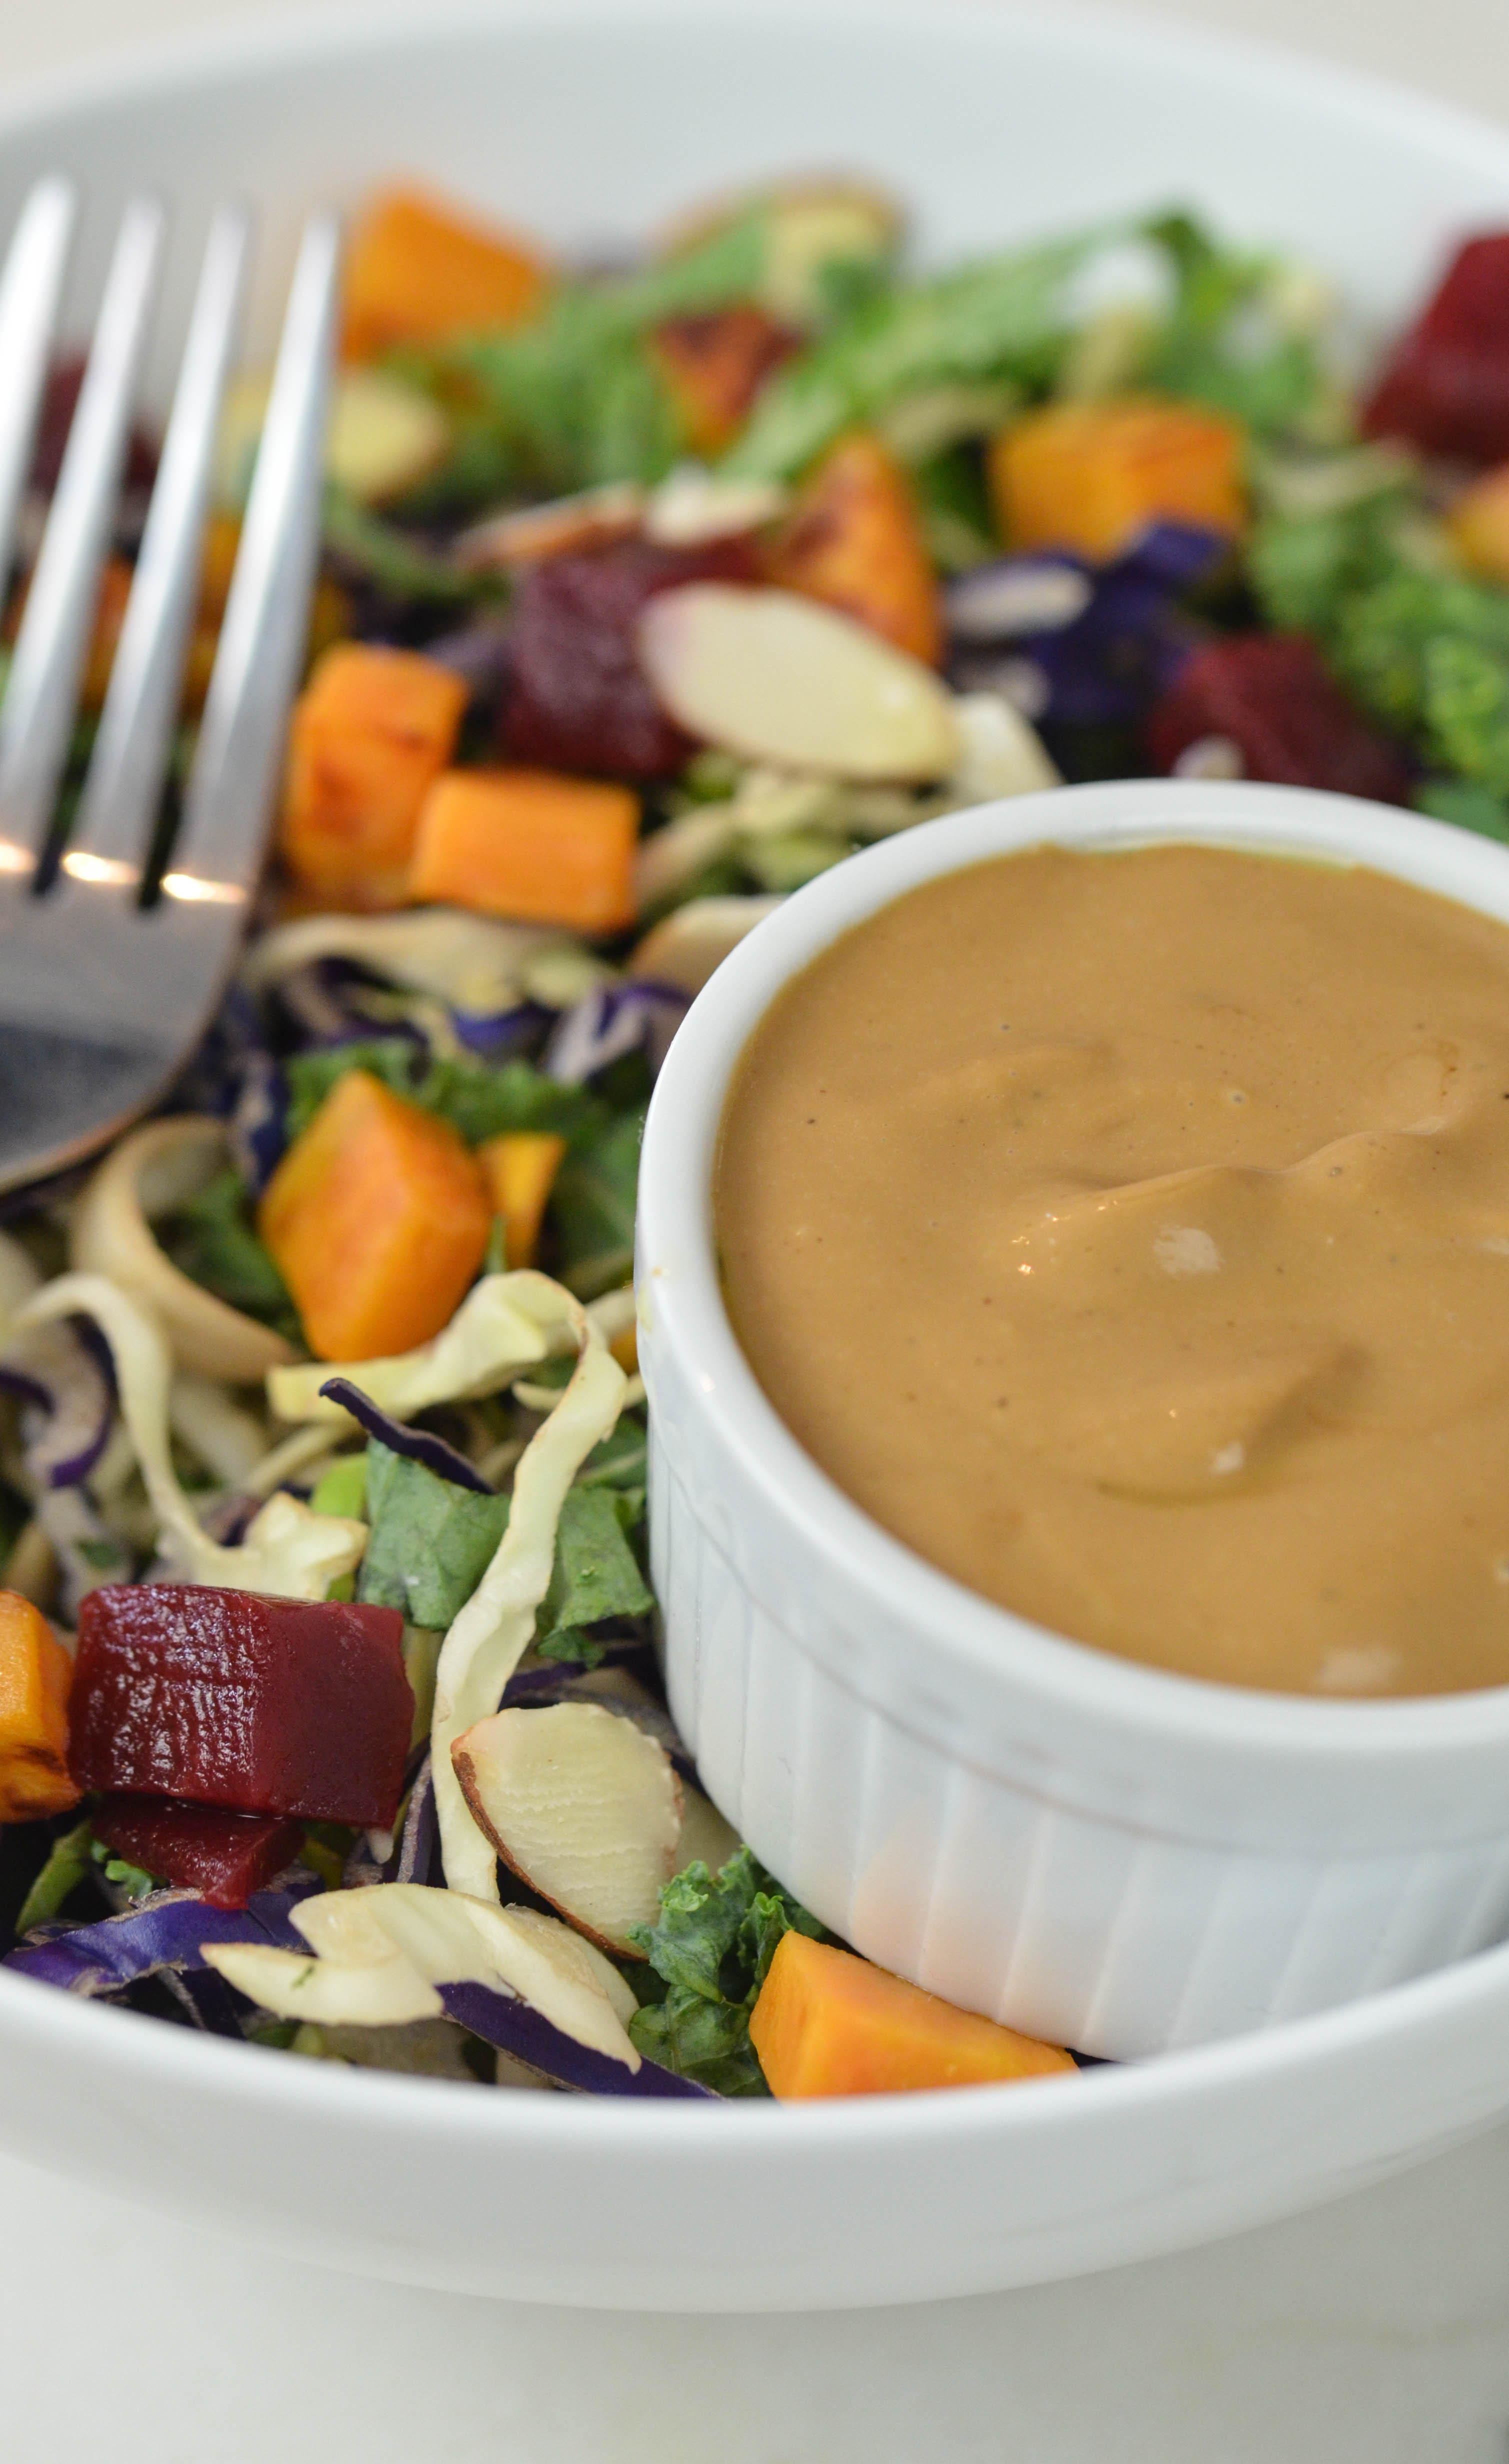 How to make your own salad dressing with balsamic vinegar